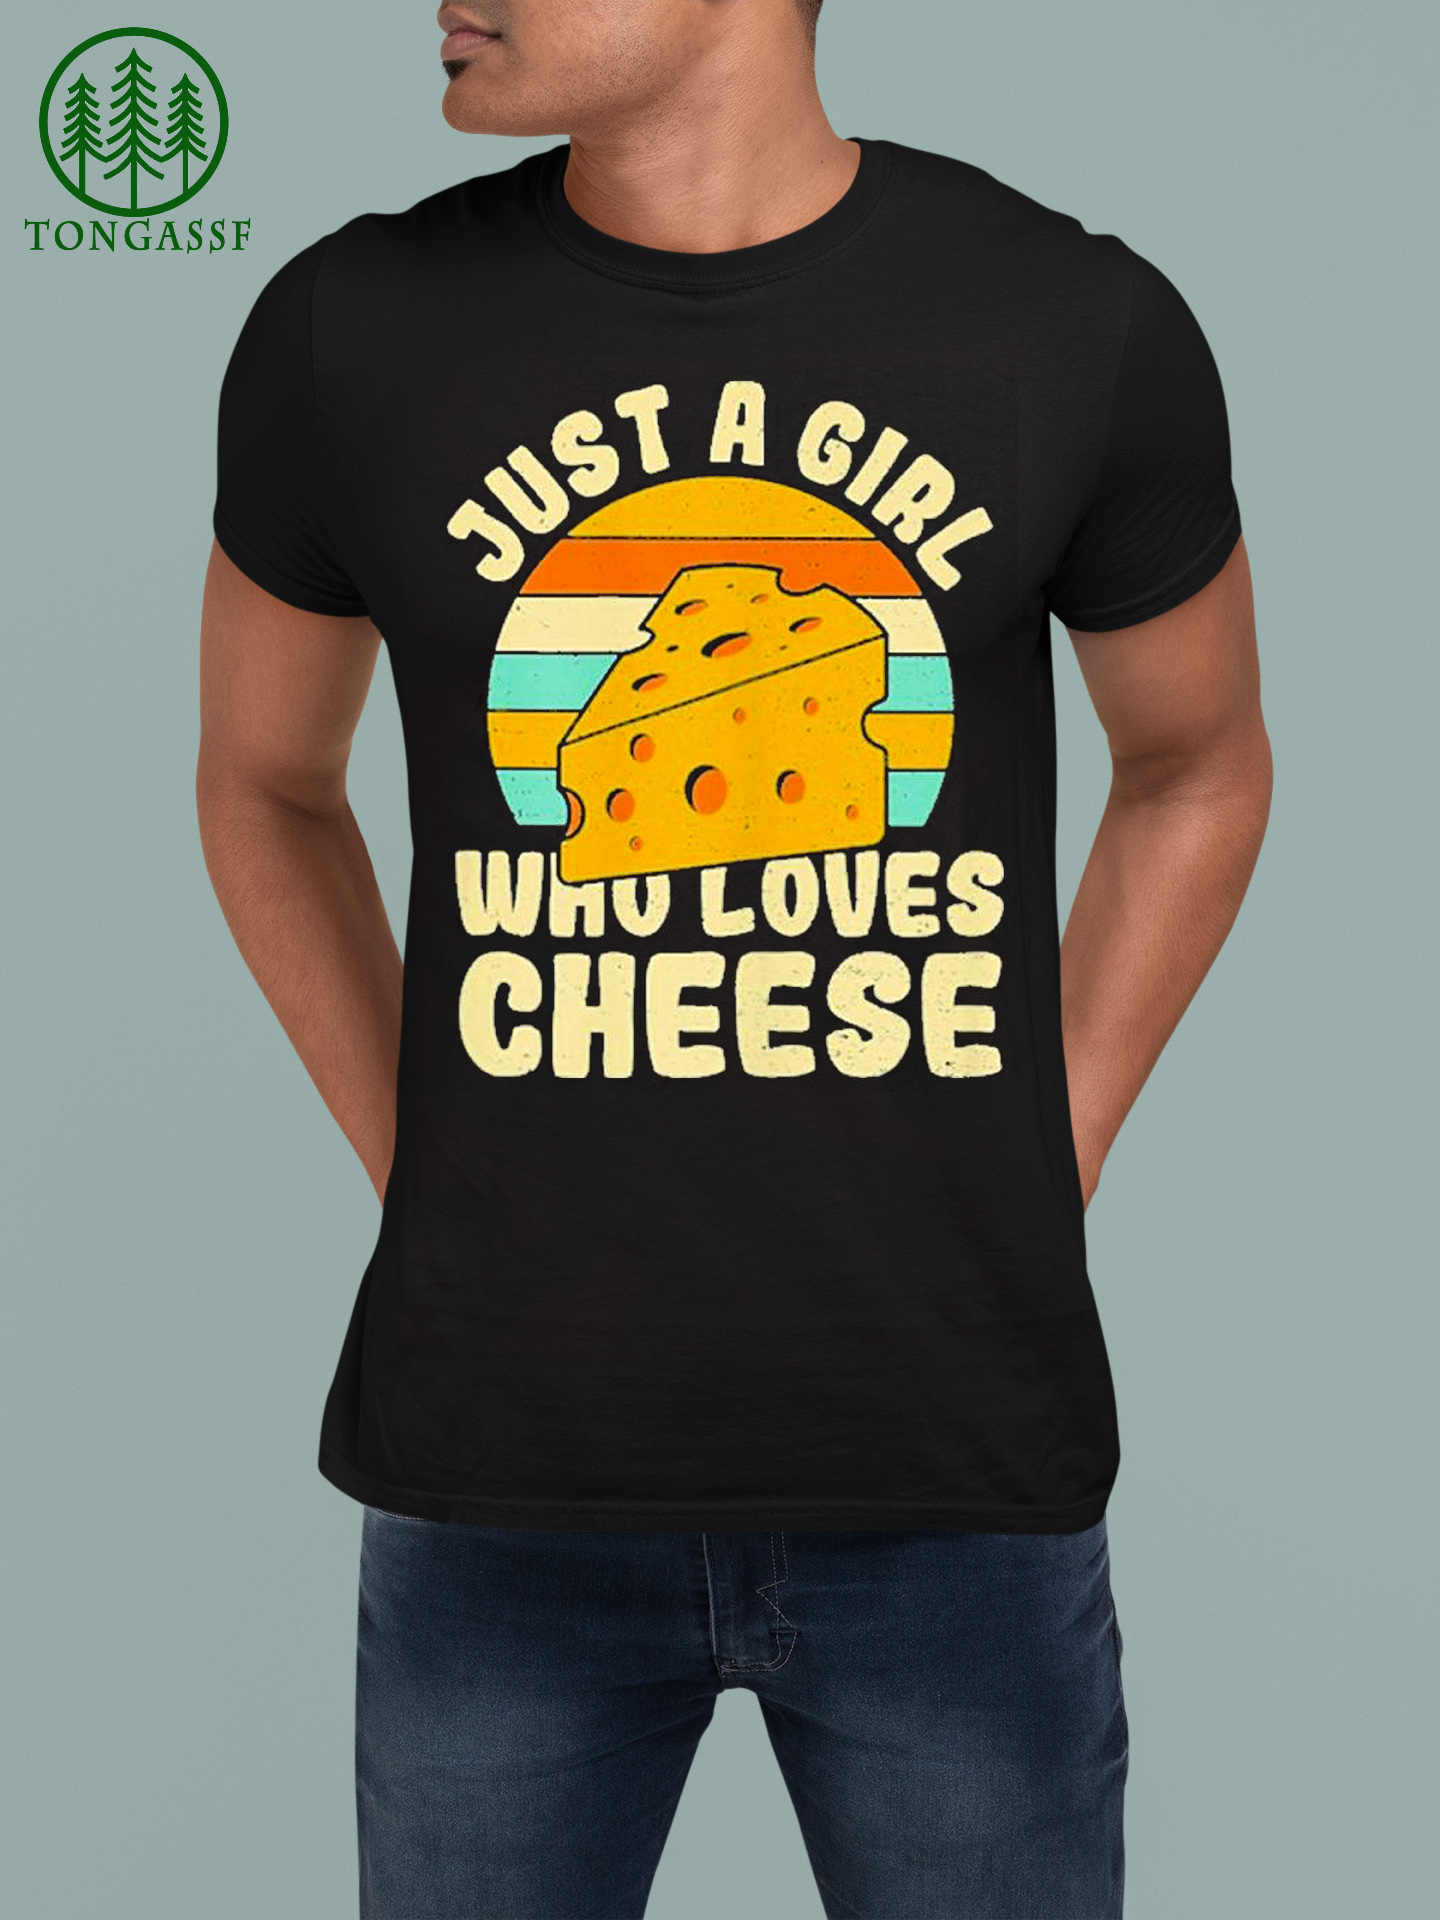 Just a girl who loves cheese T shirt